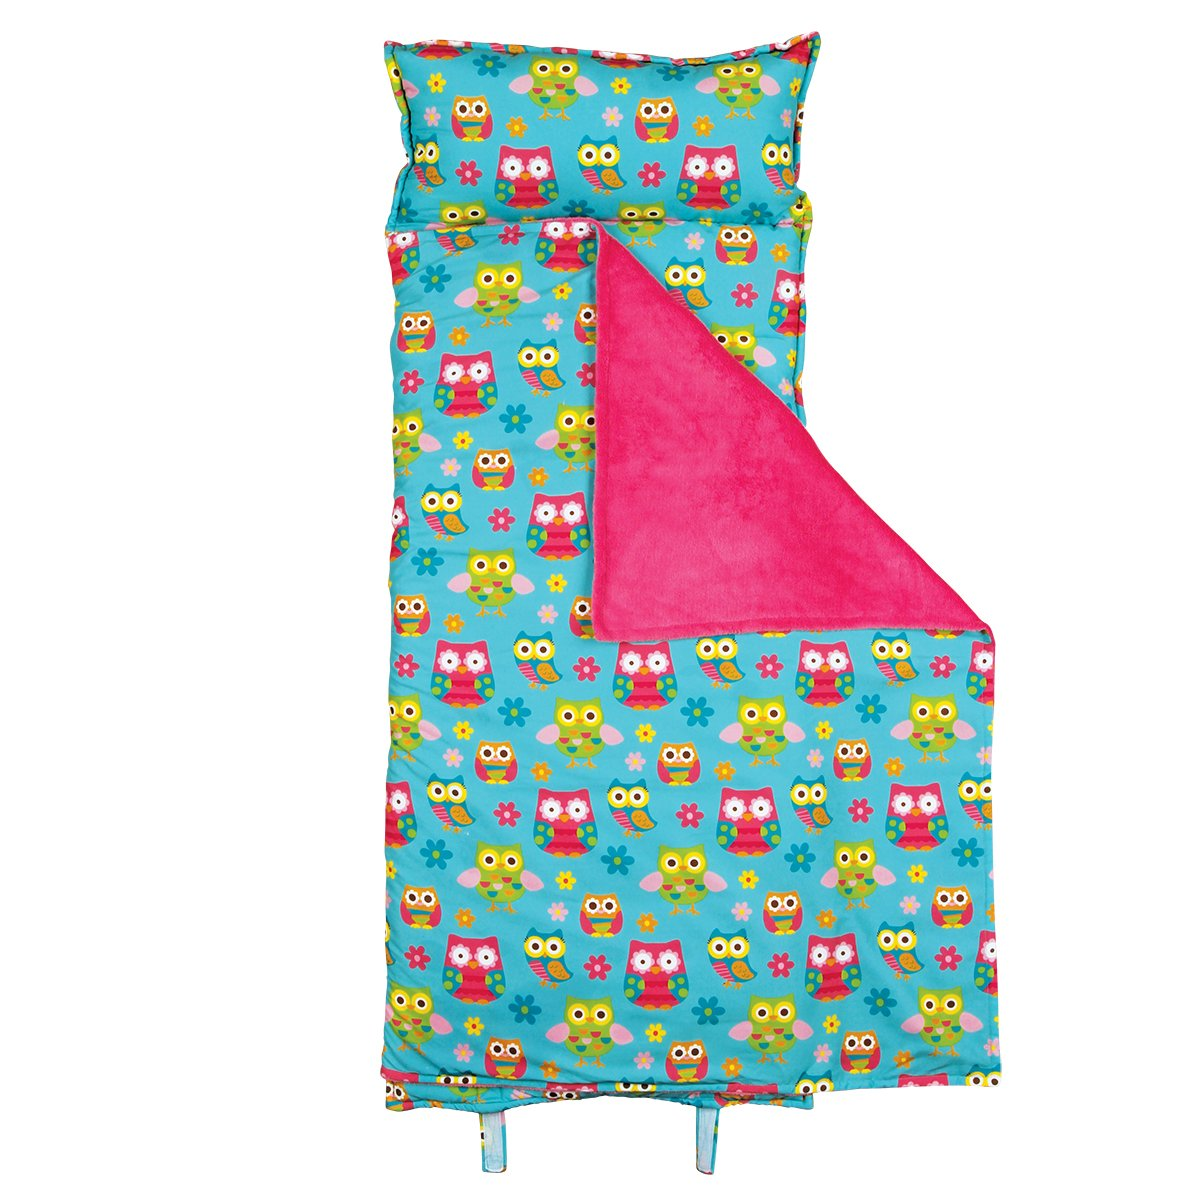 Top 9 Best Toddler Nap Mat with Pillow Reviews in 2019 3